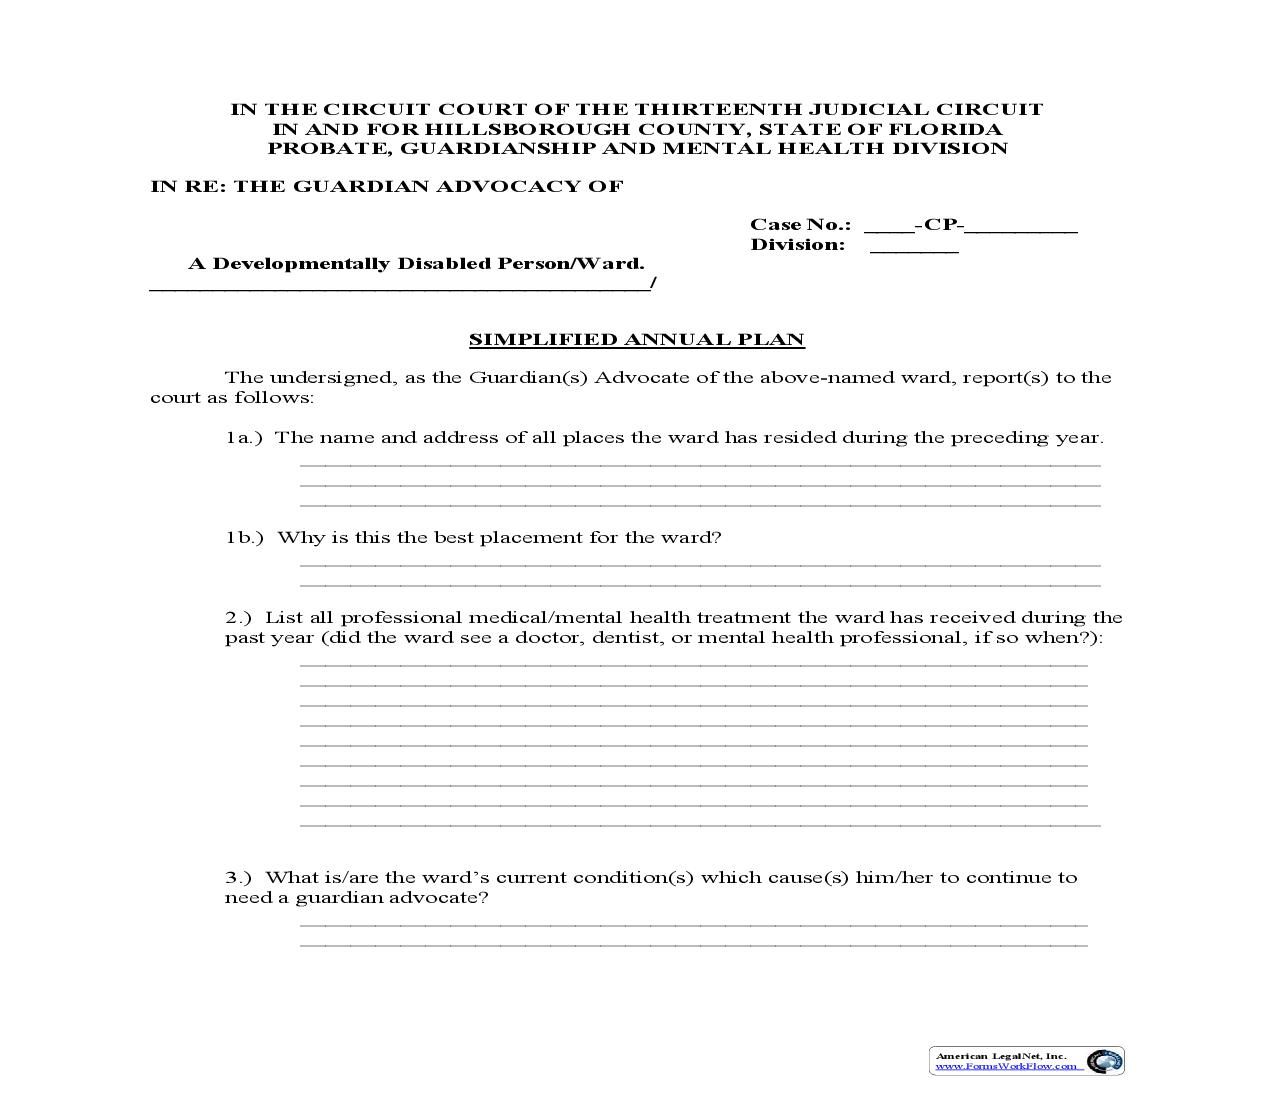 Simplified Annual Plan For Guardian Advocate | Pdf Fpdf Doc Docx | Florida